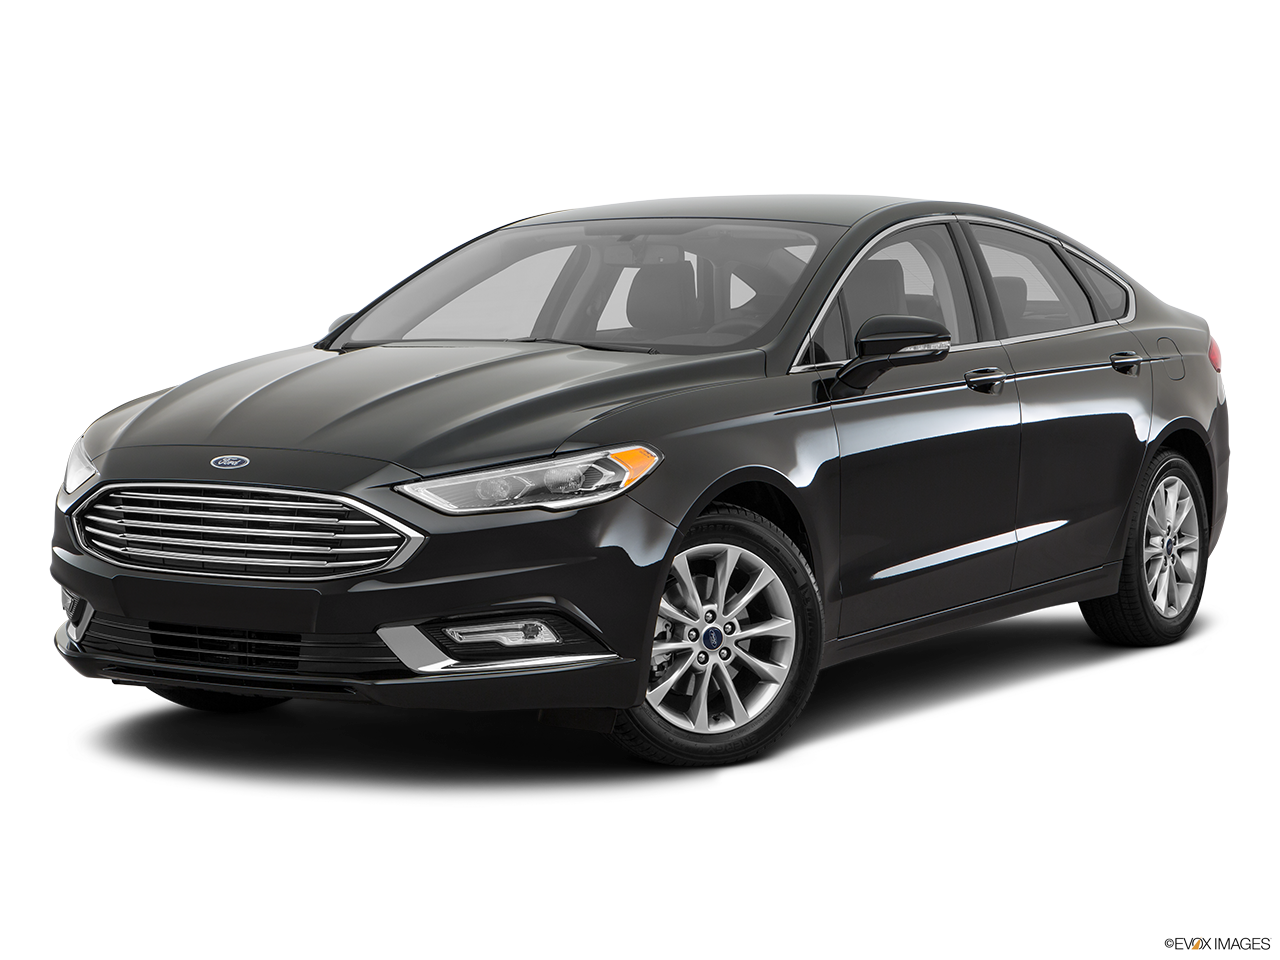 Test Drive A 2017 Ford Fusion at All Star Ford Kilgore in Kilgore